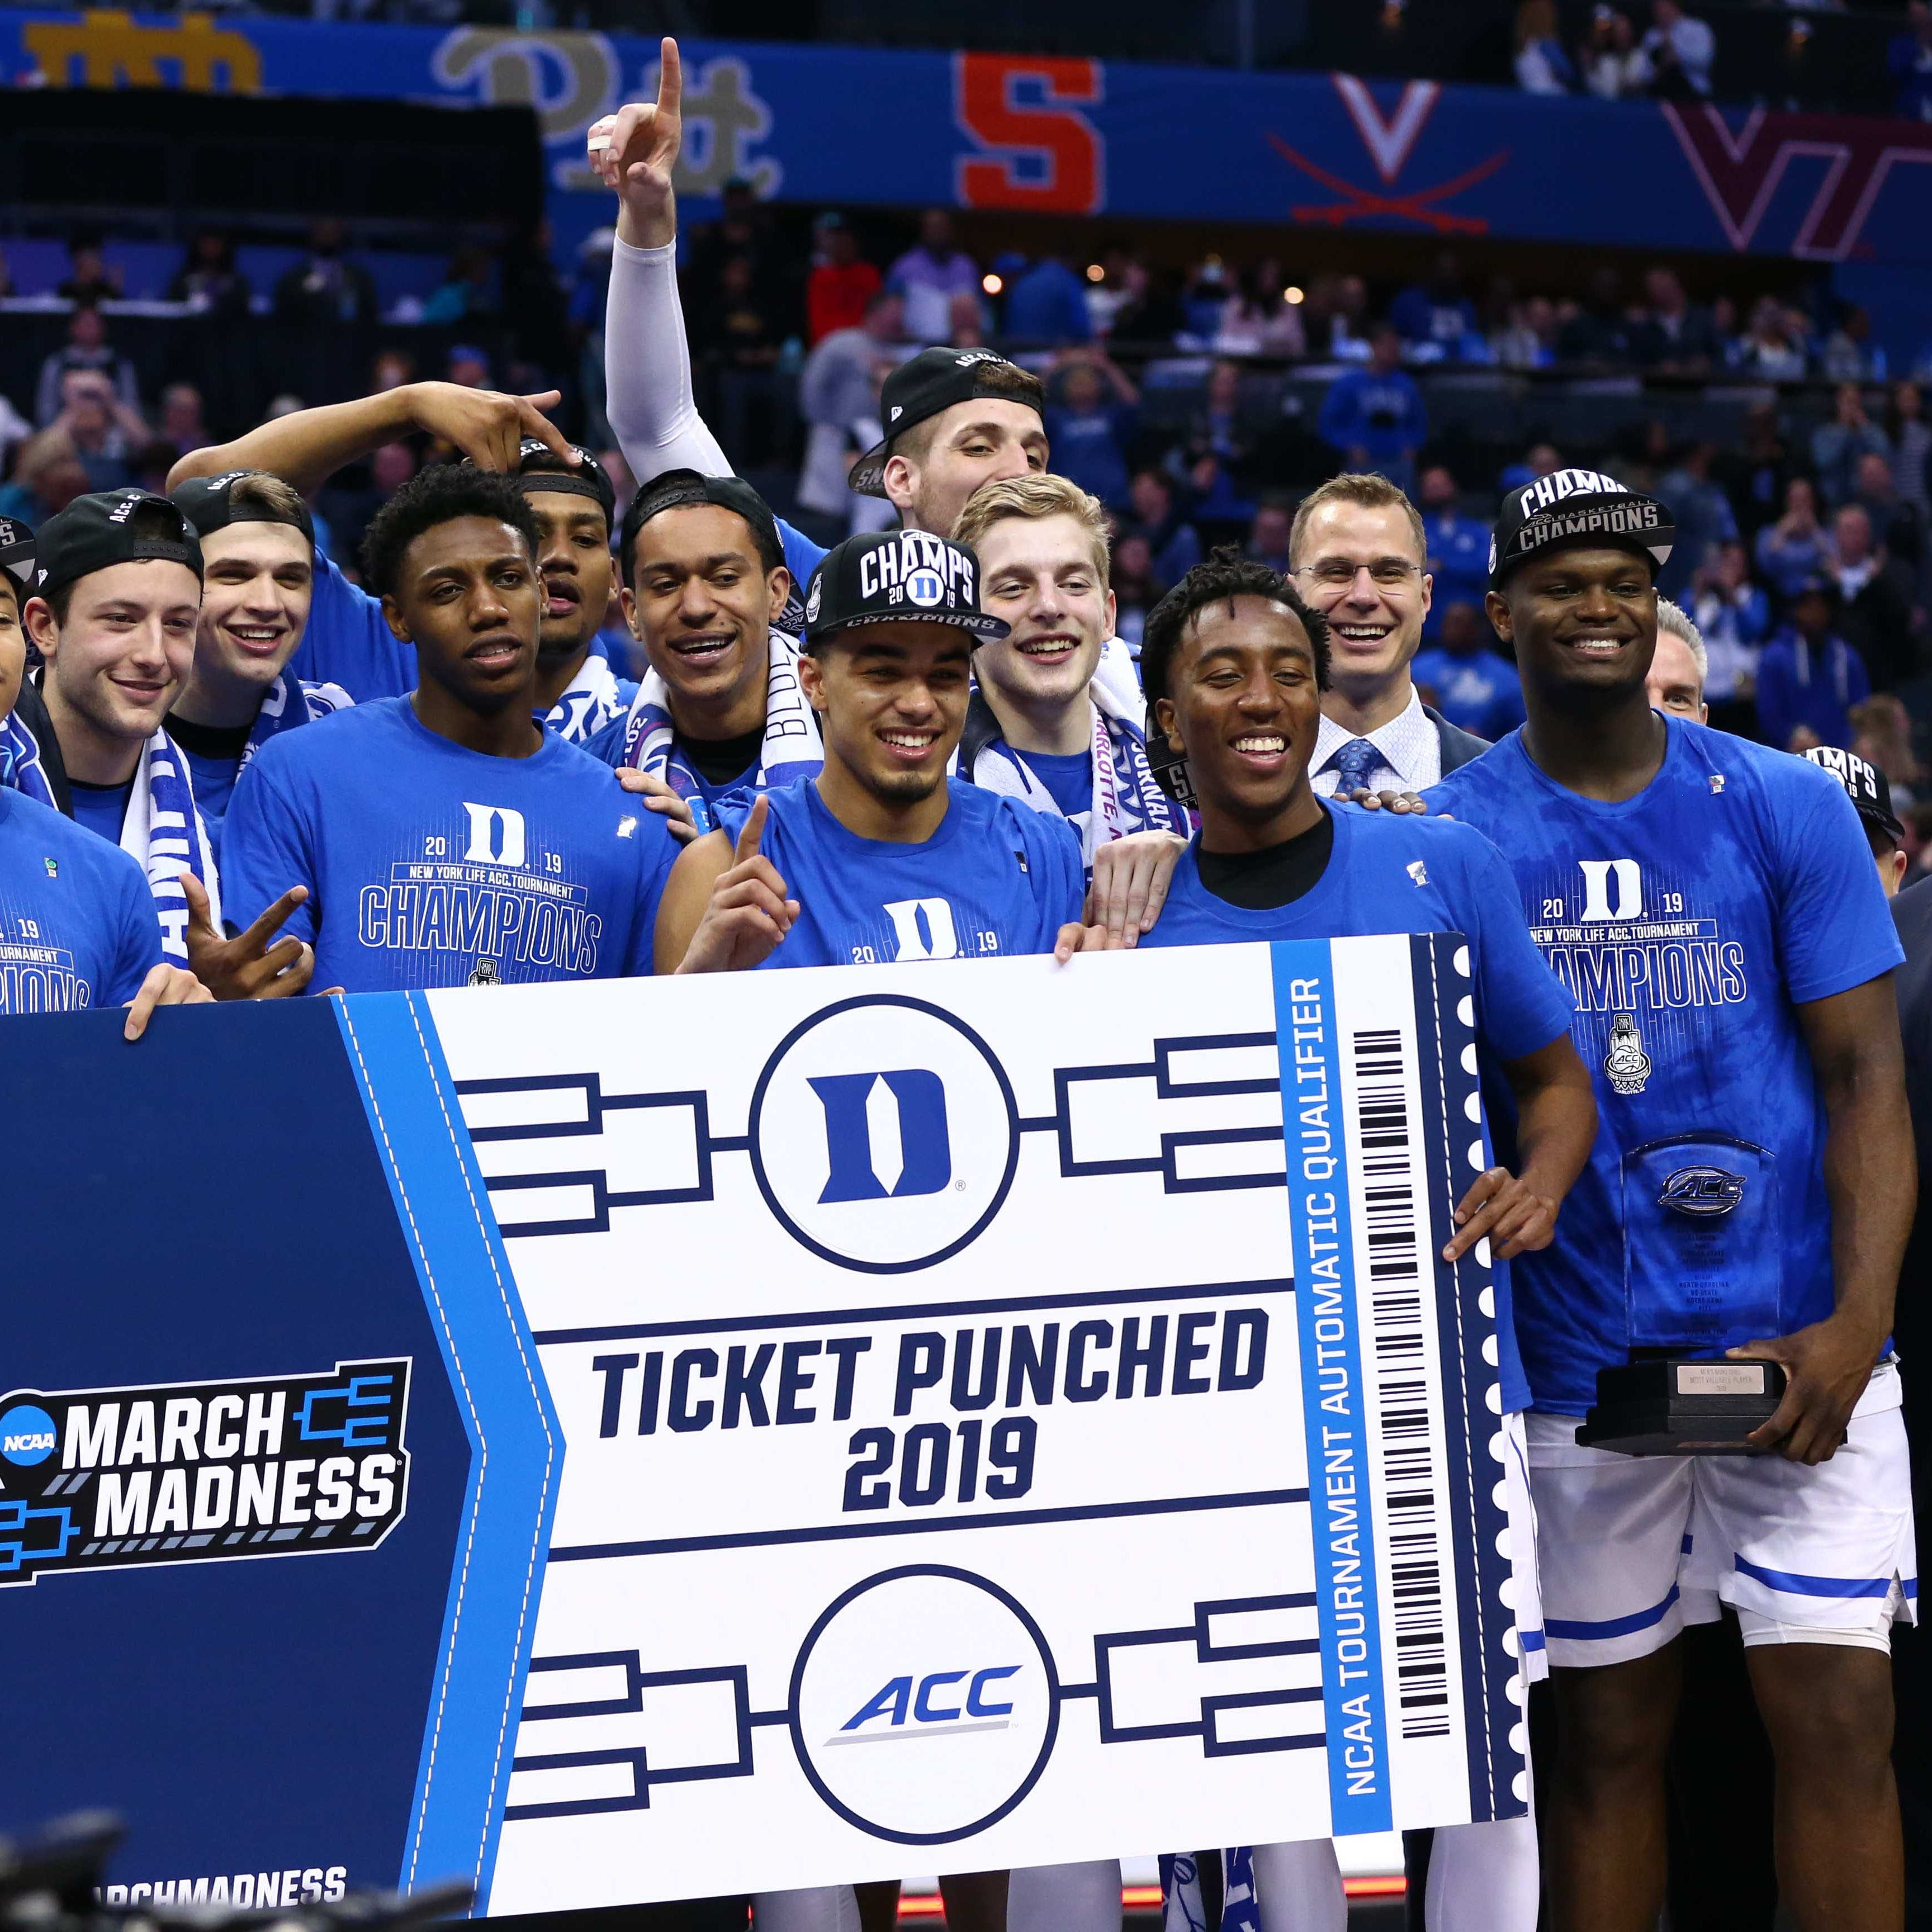 Download the 2019 NCAA basketball tournament bracket